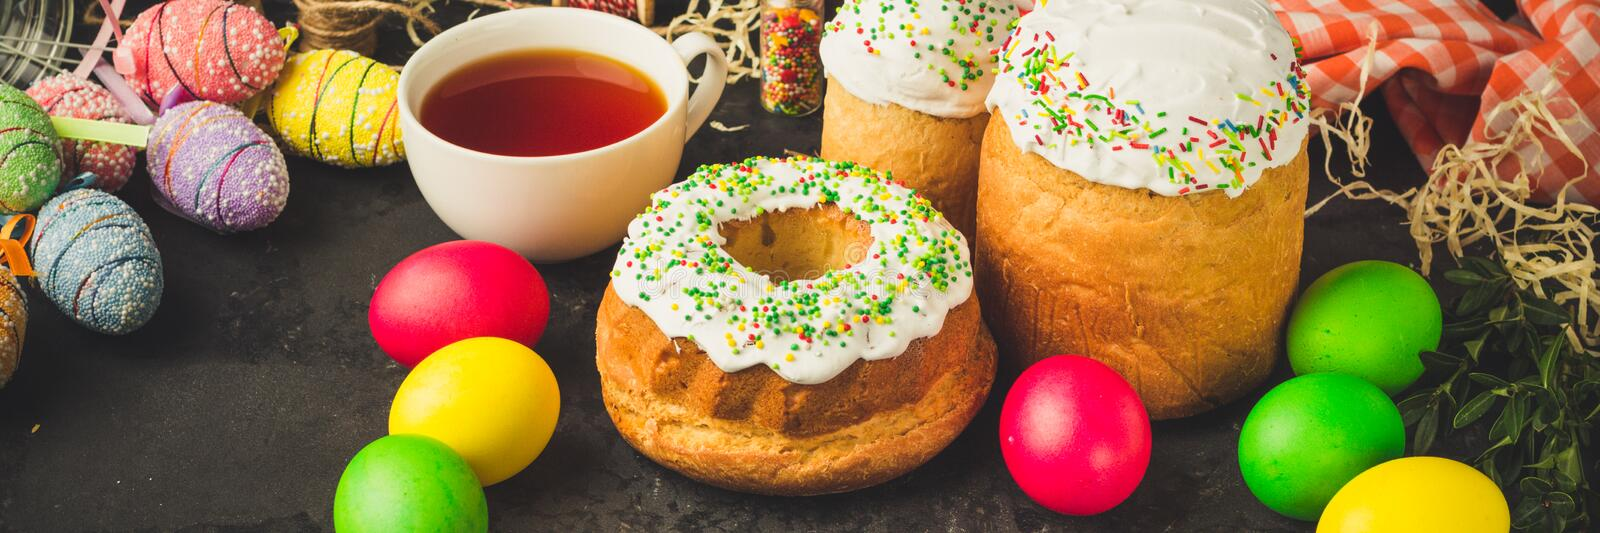 Easter cake and Easter eggs, traditional holiday attributes Happy Easter!. food background. top view. Easter cake and Easter eggs, traditional holiday attributes stock photo